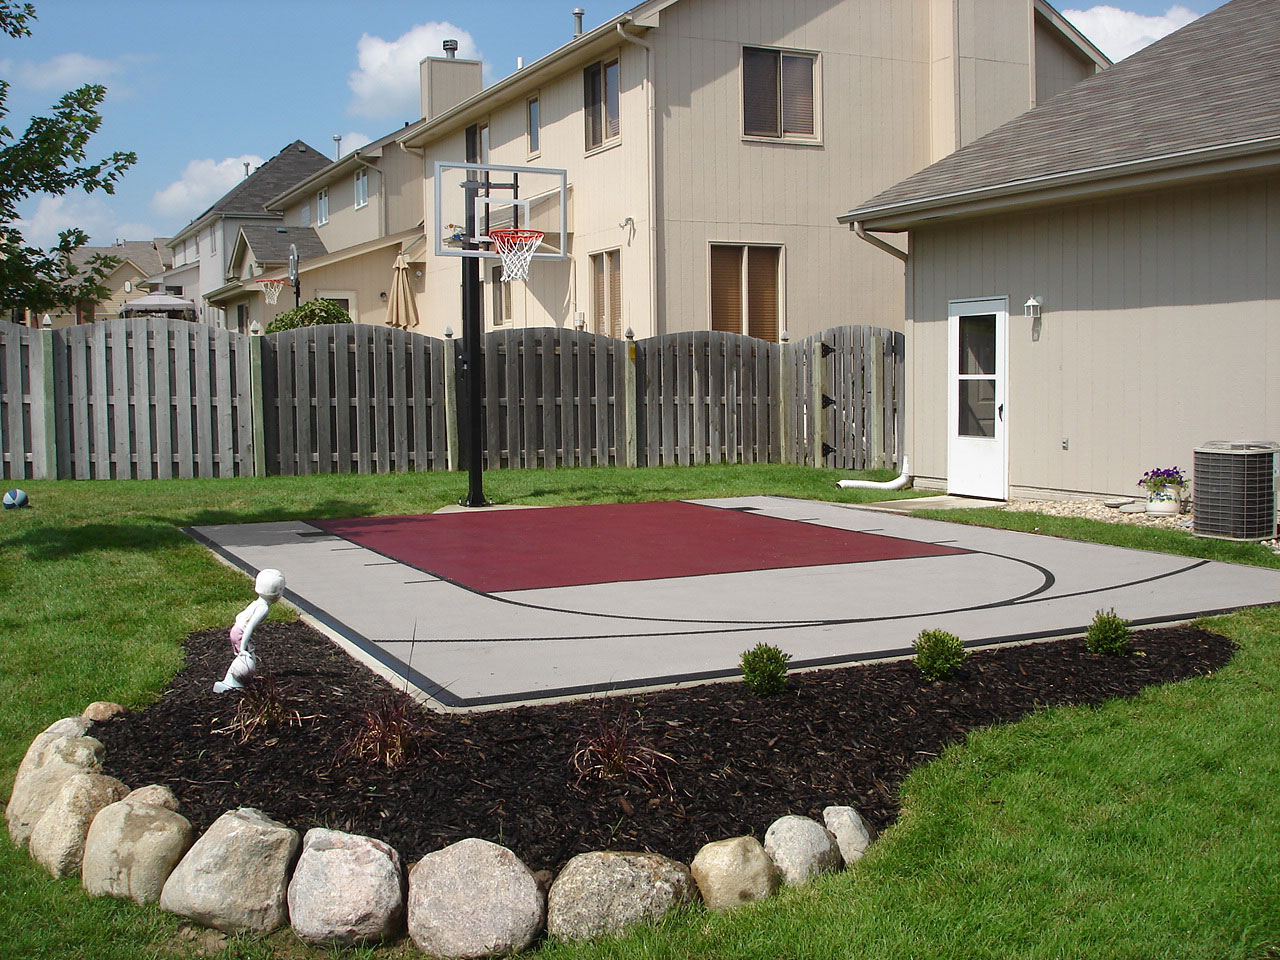 Gray and burgundy backyard basketball court